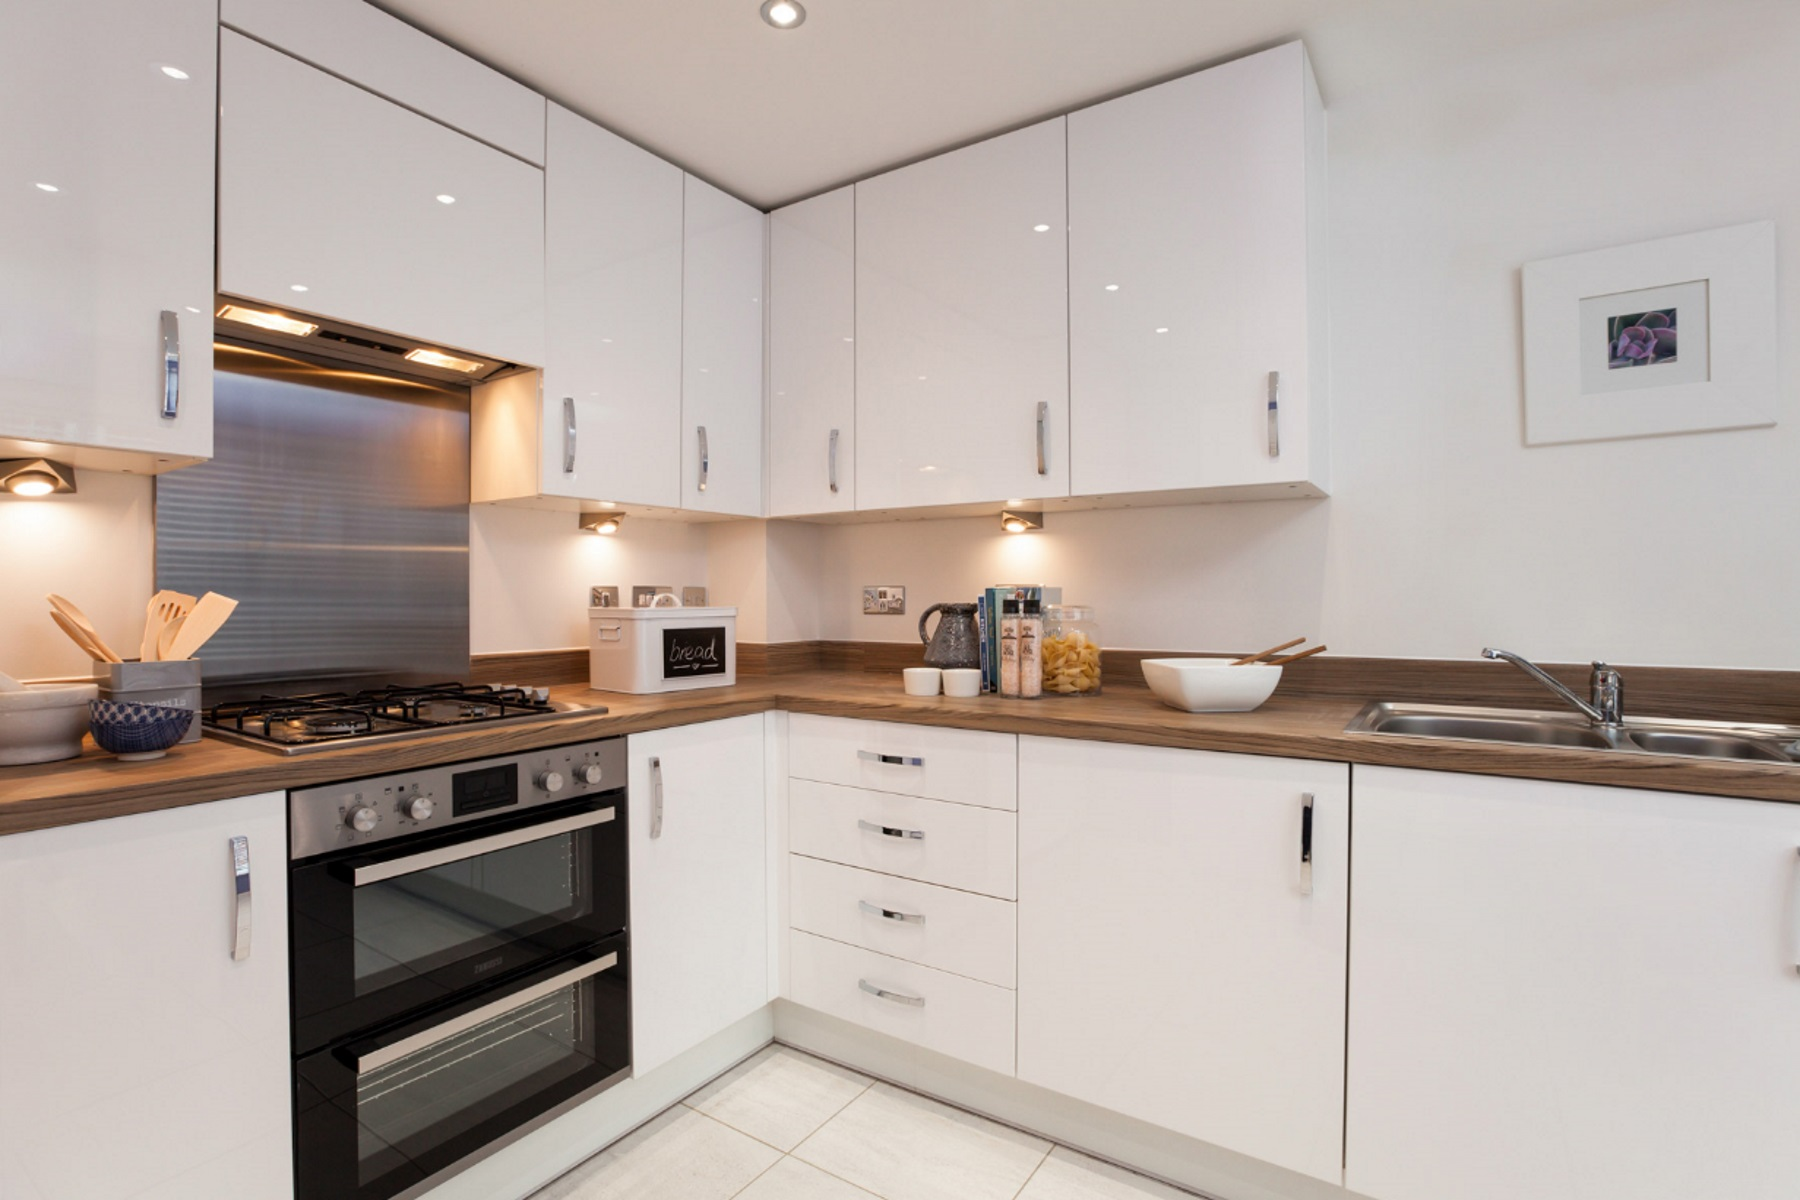 TW Exeter - Cranbrook - Crofton example kitchen